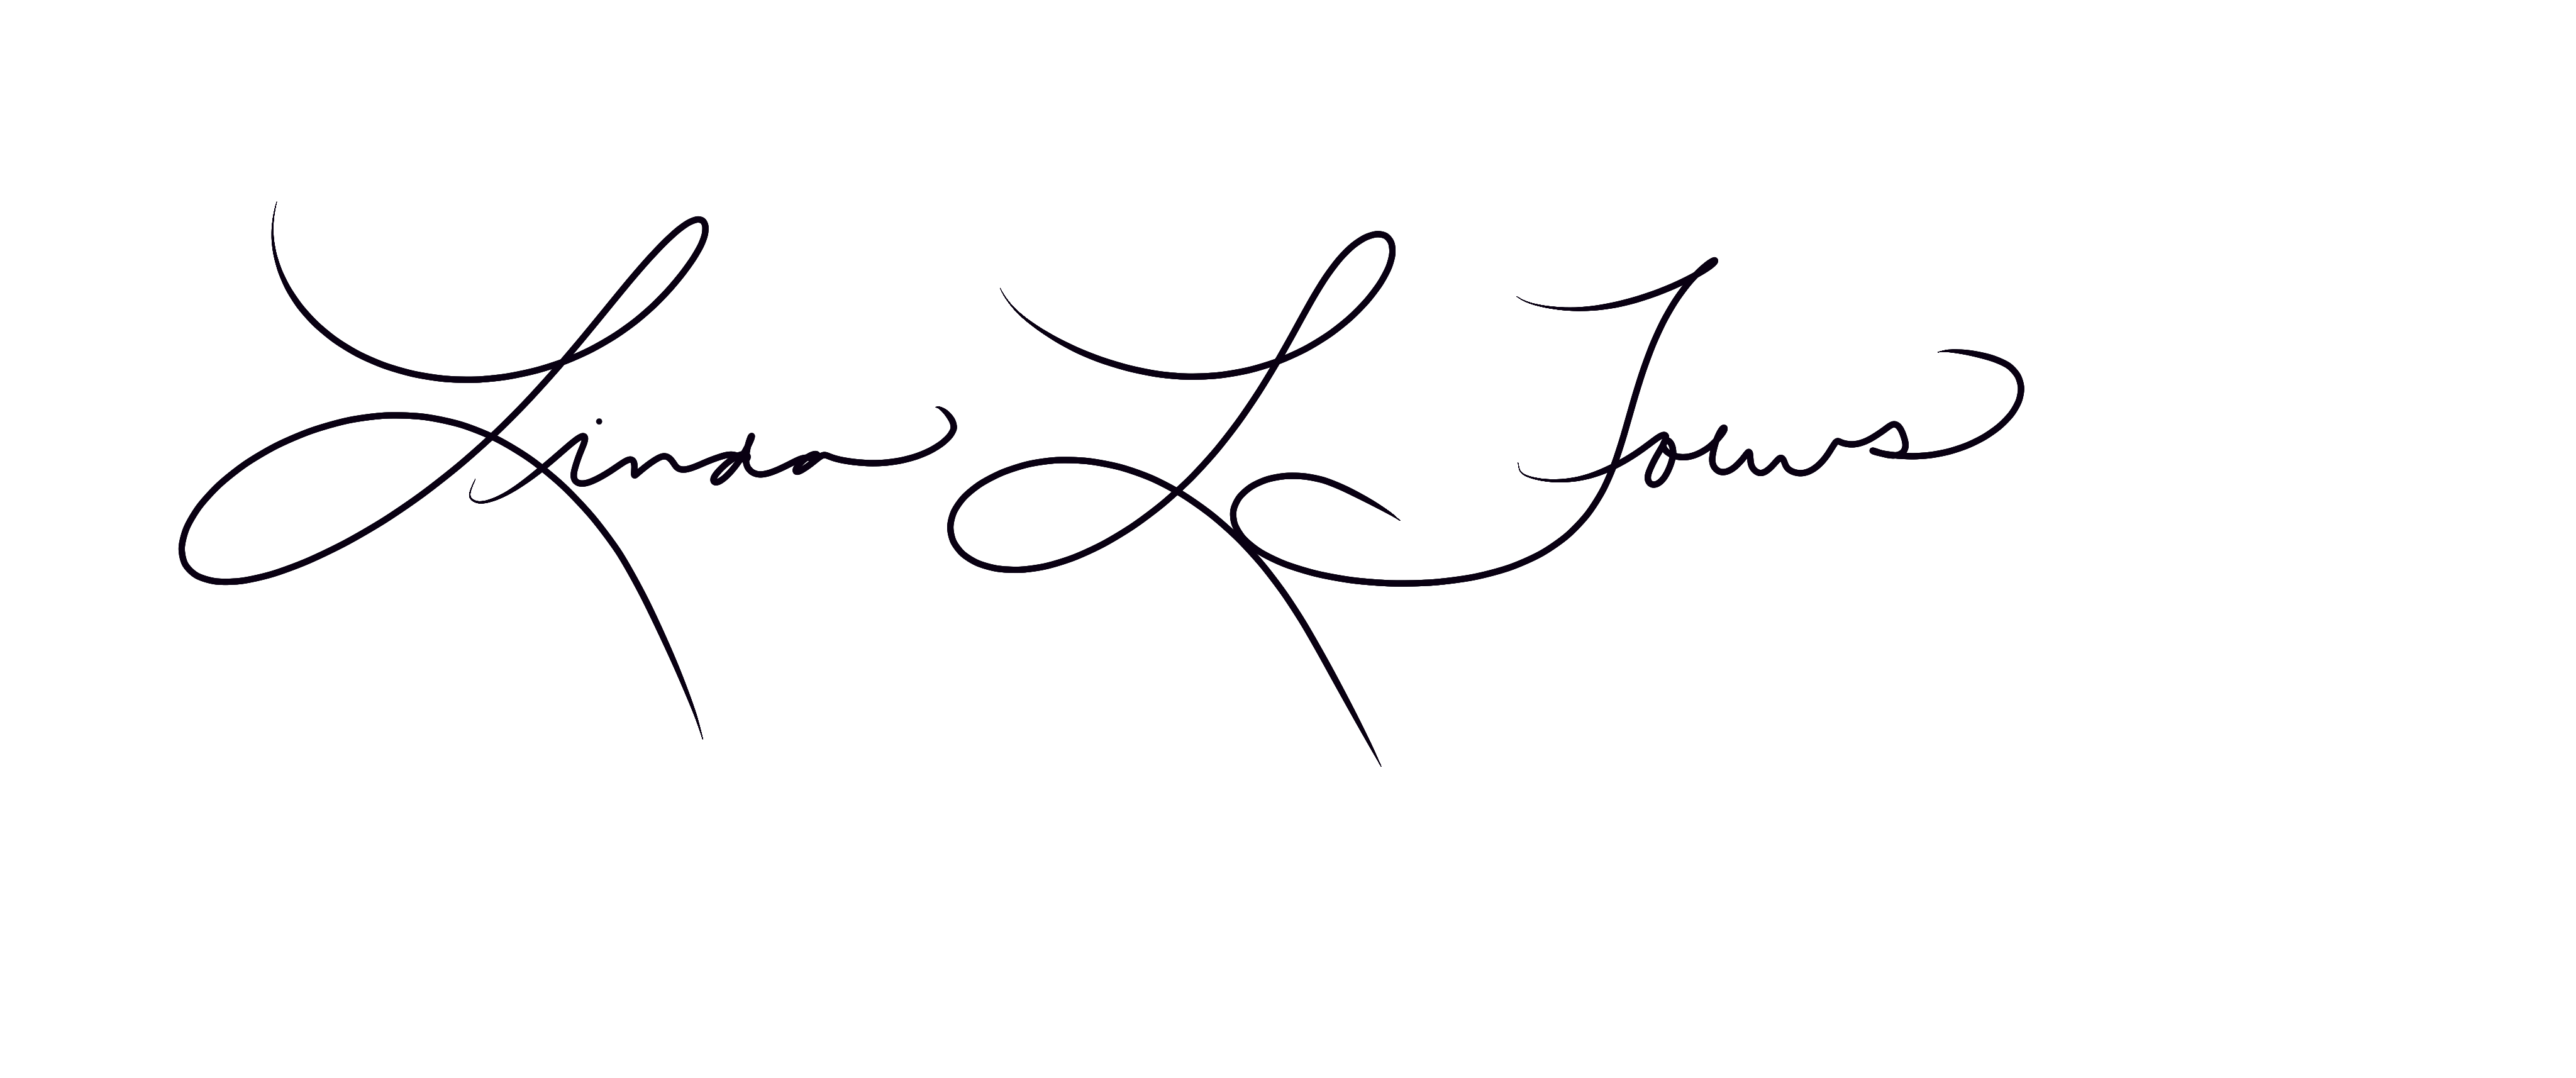 lindaL.toews's Signature